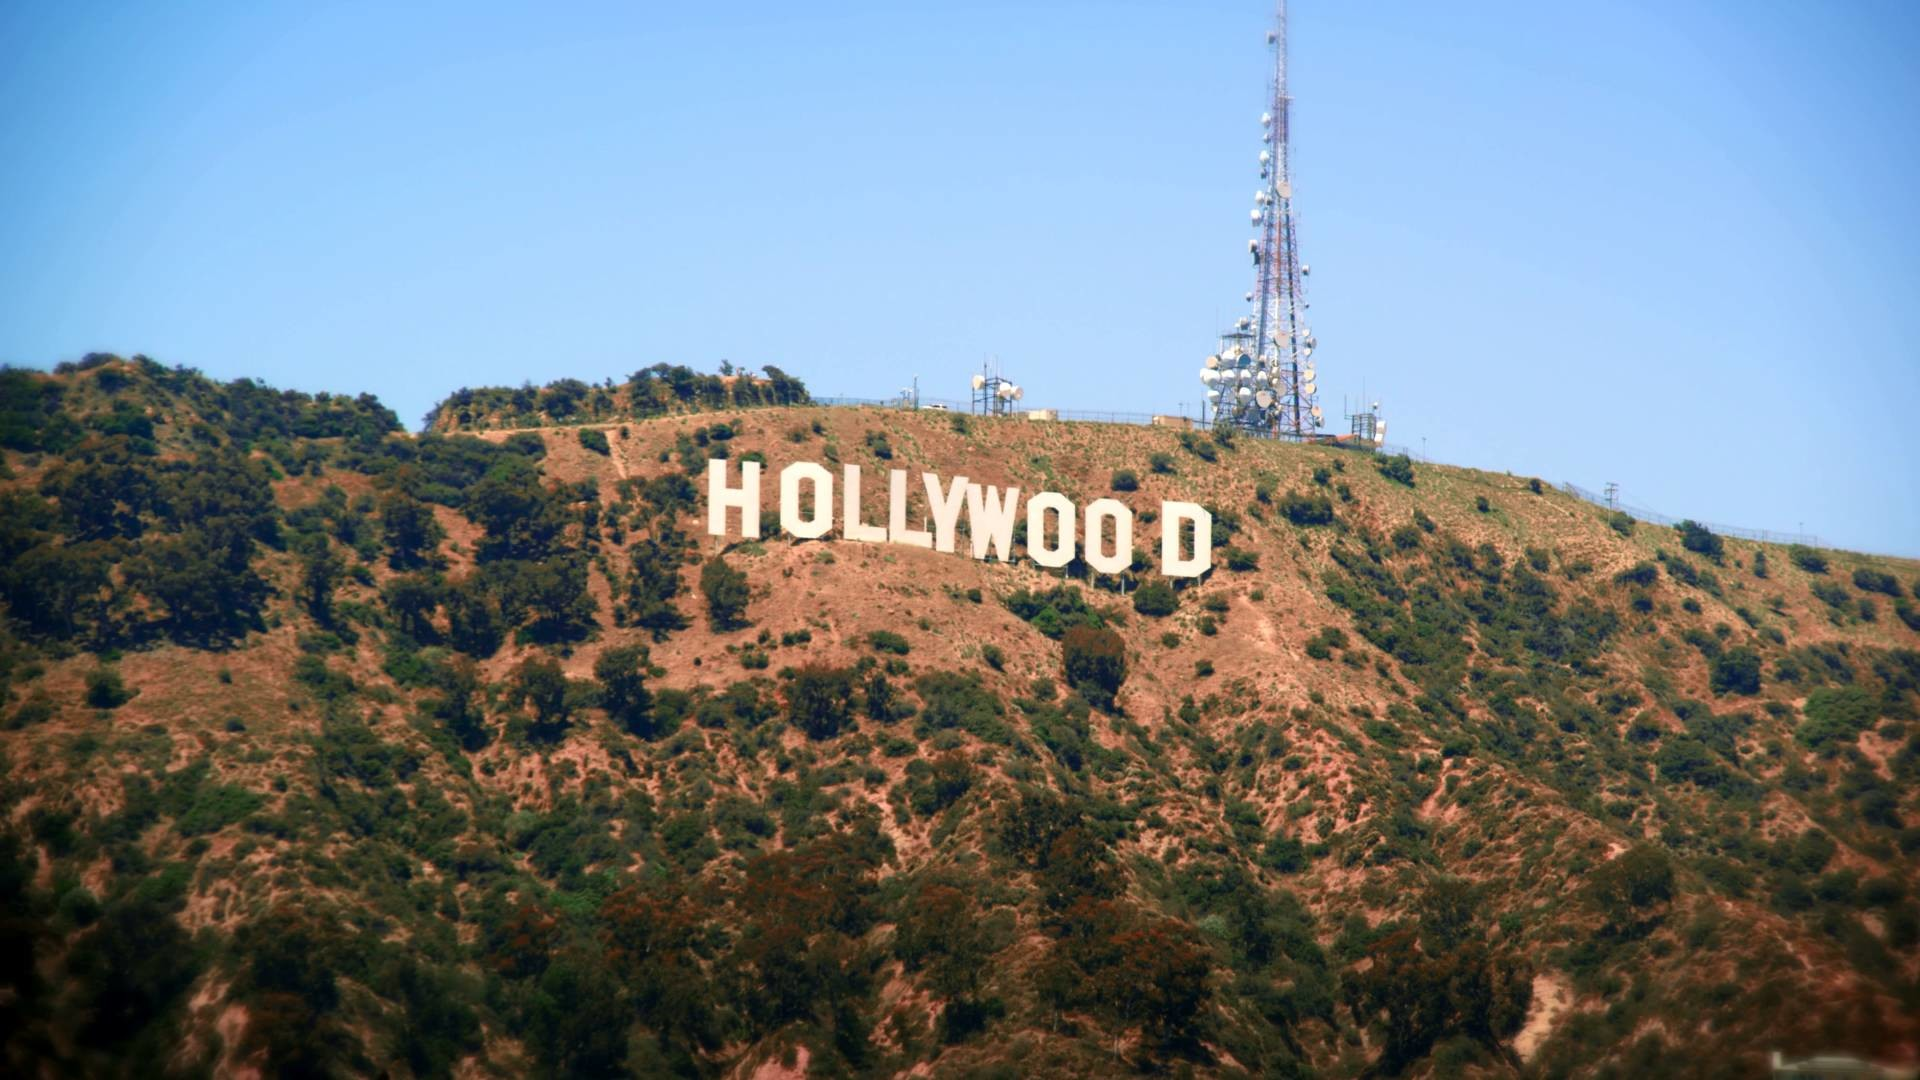 Hollywood Sign Wallpapers (59+ images)